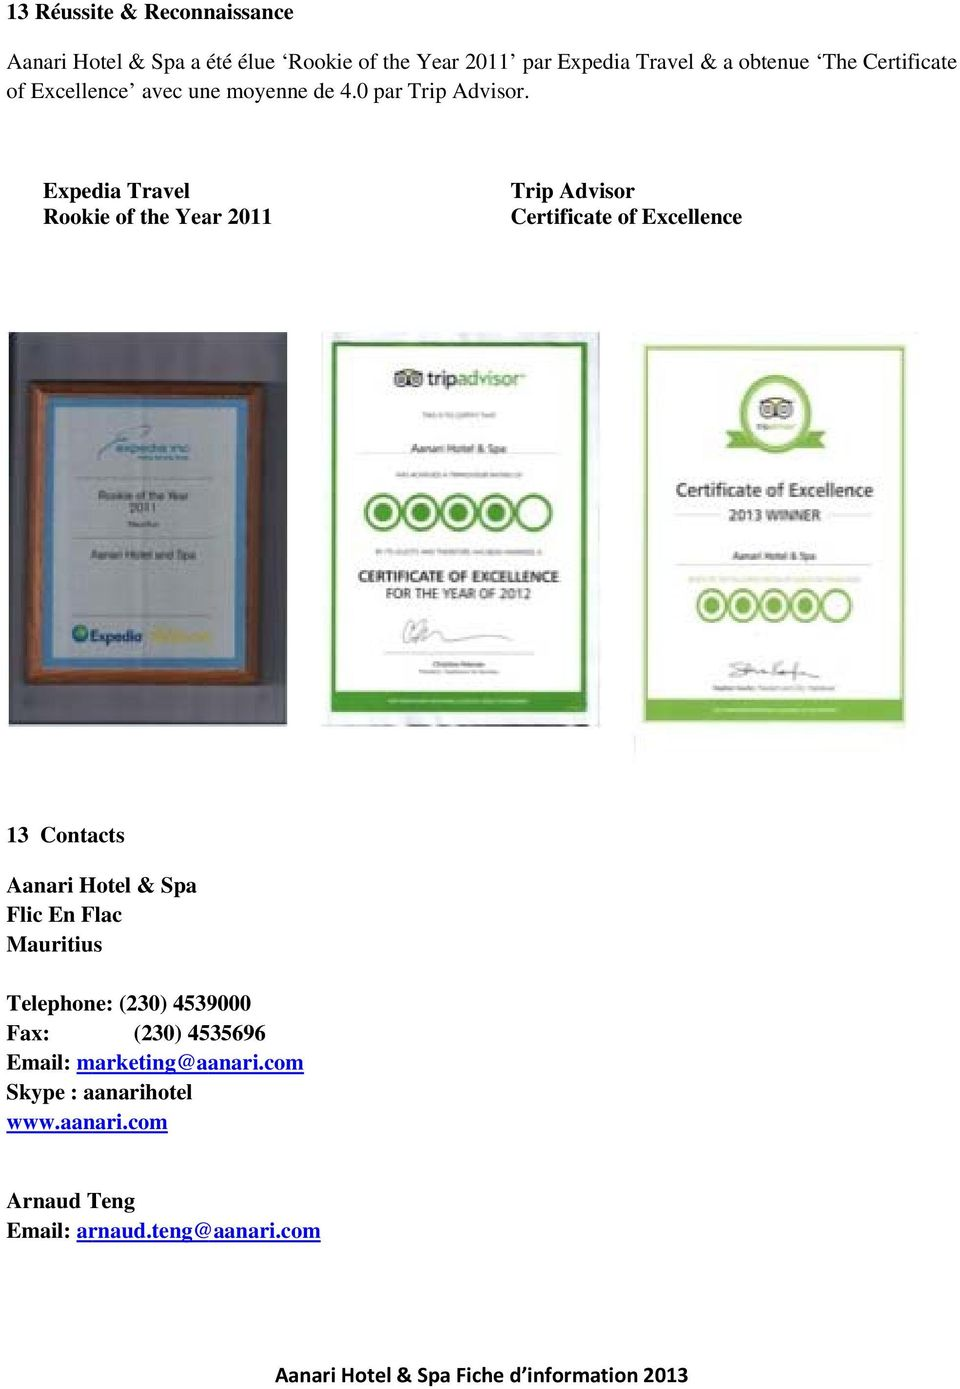 Expedia Travel Rookie of the Year 2011 Trip Advisor Certificate of Excellence 13 Contacts Aanari Hotel & Spa Flic En Flac